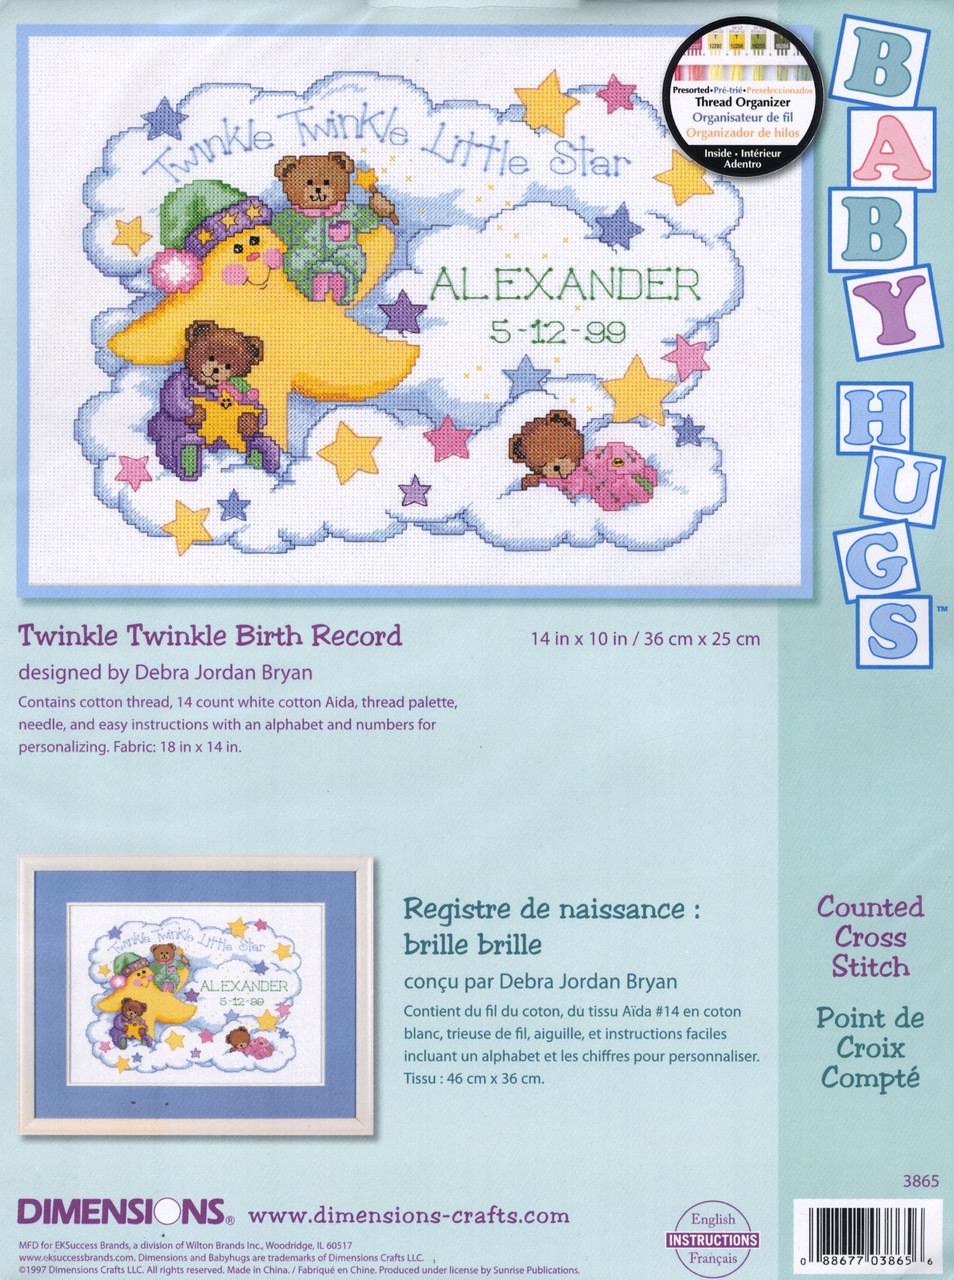 Dimensions - Twinkle Twinkle Birth Record